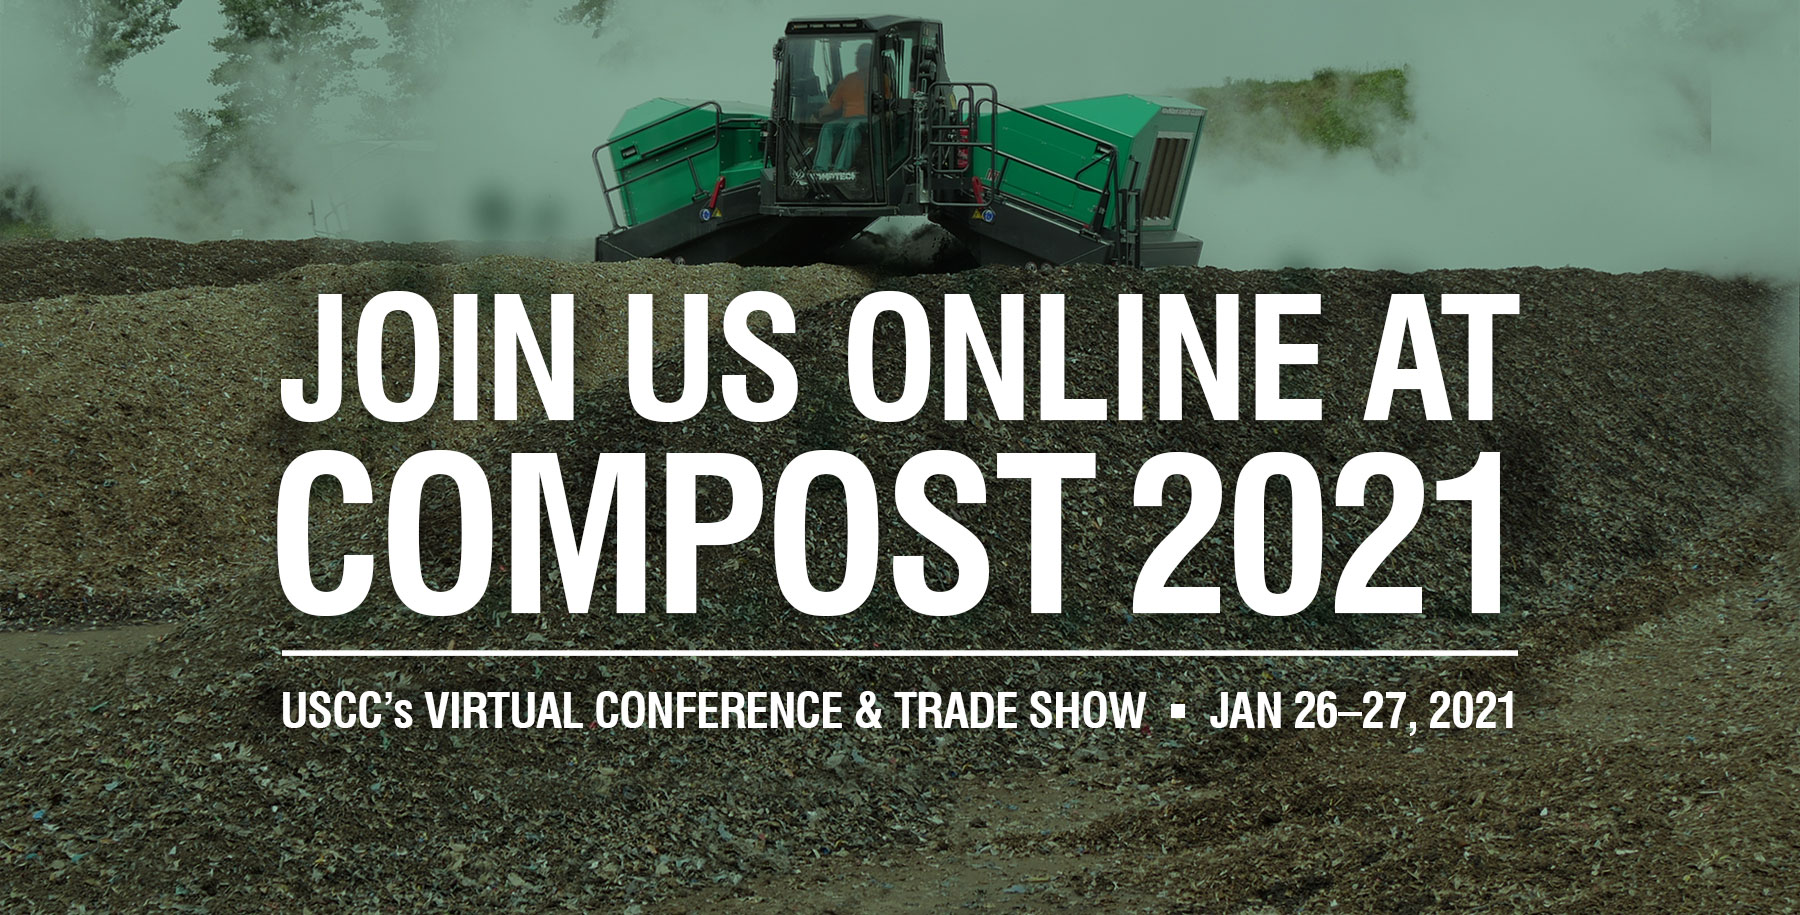 Join us online at COMPOST2021